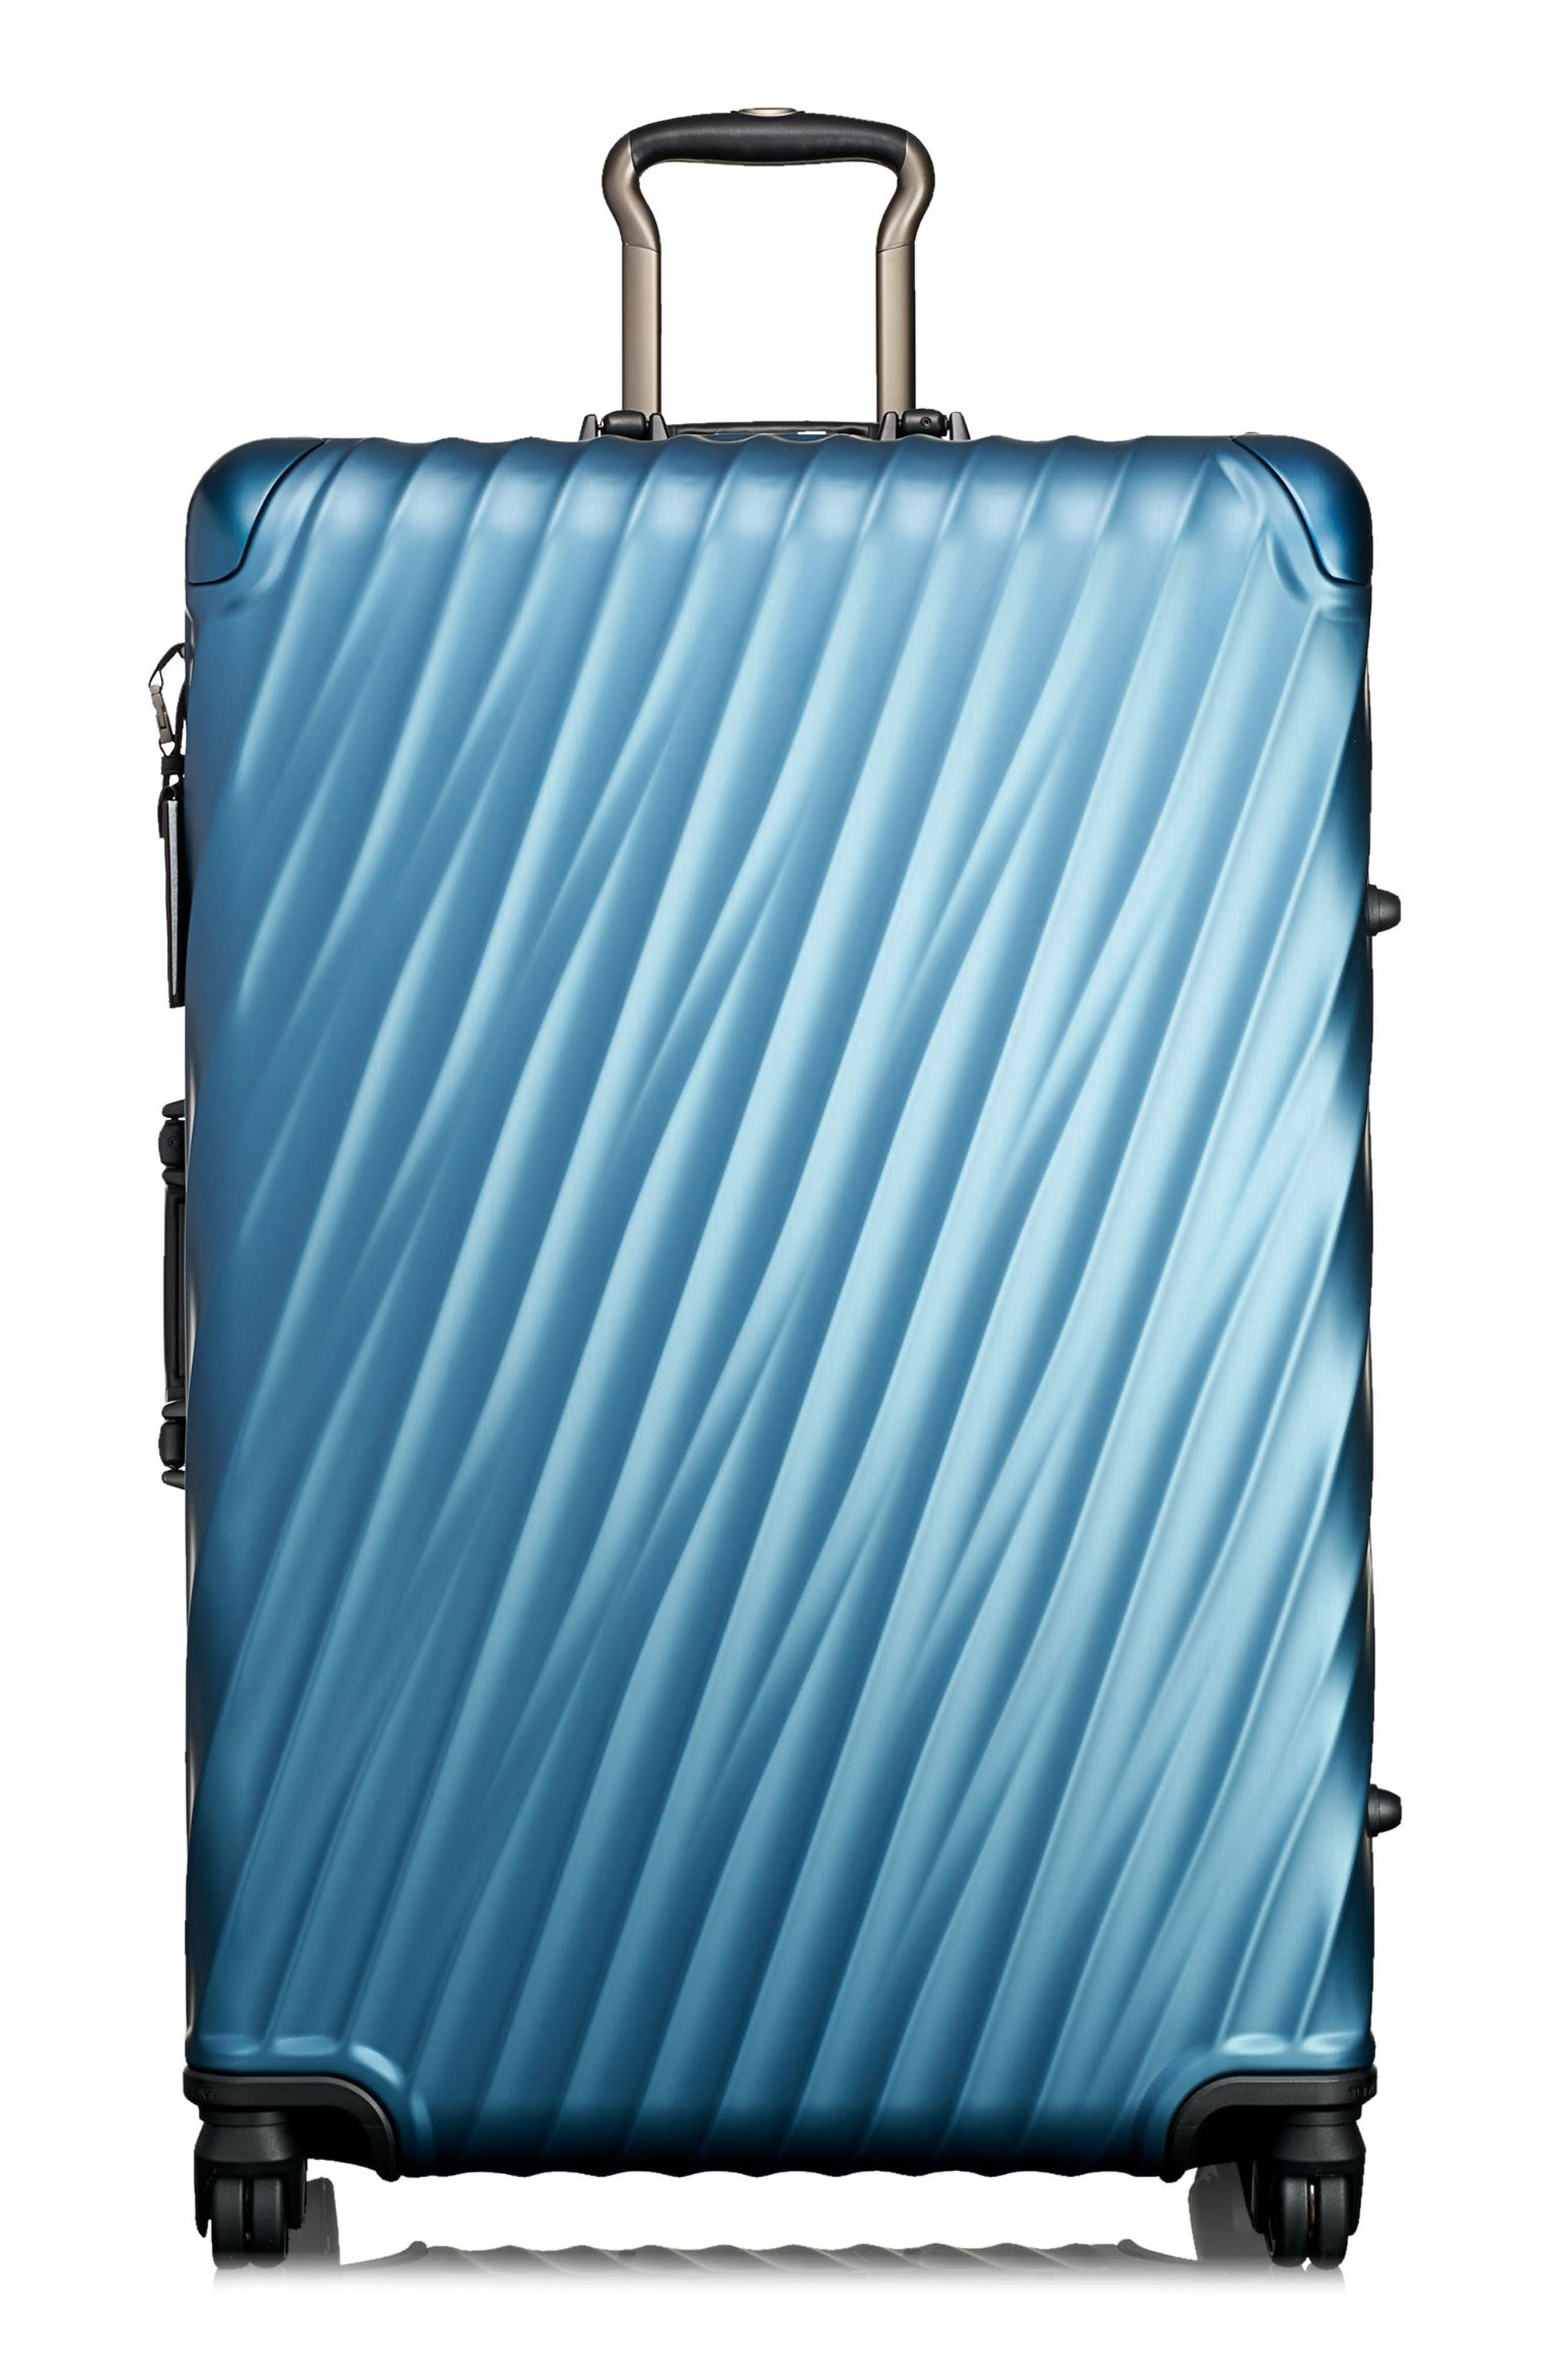 19 Degree Extended Trip Wheeled Aluminum Packing Case,                         Main,                         color, Blue